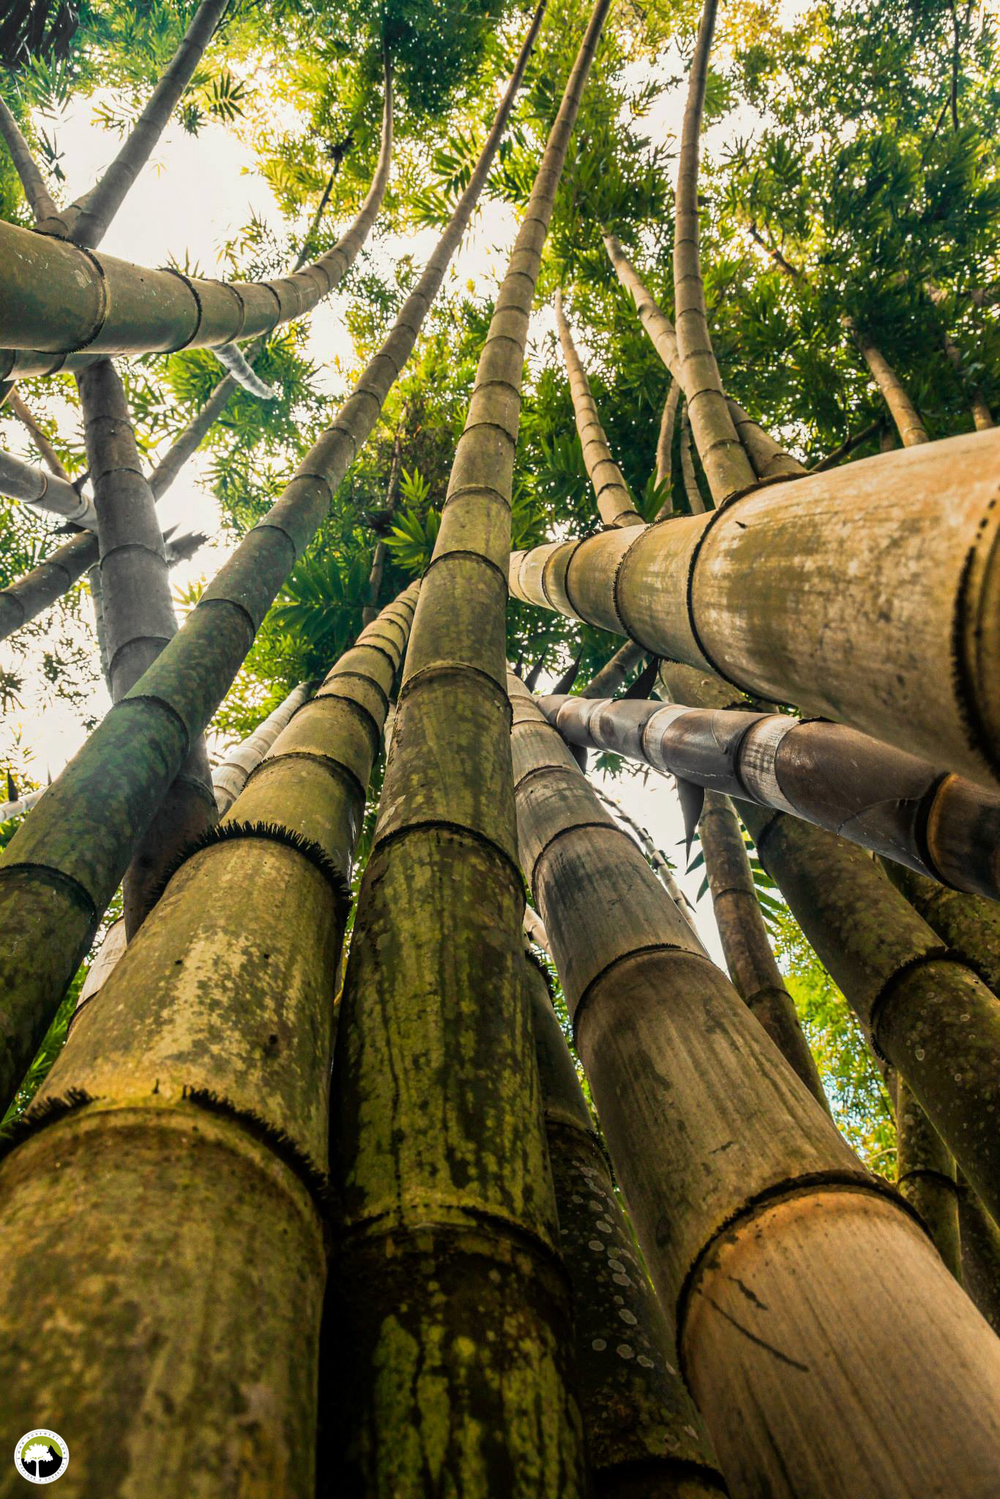 Alex Fux - Bamboo grows four times fast than a standard rainforestkk.jpg